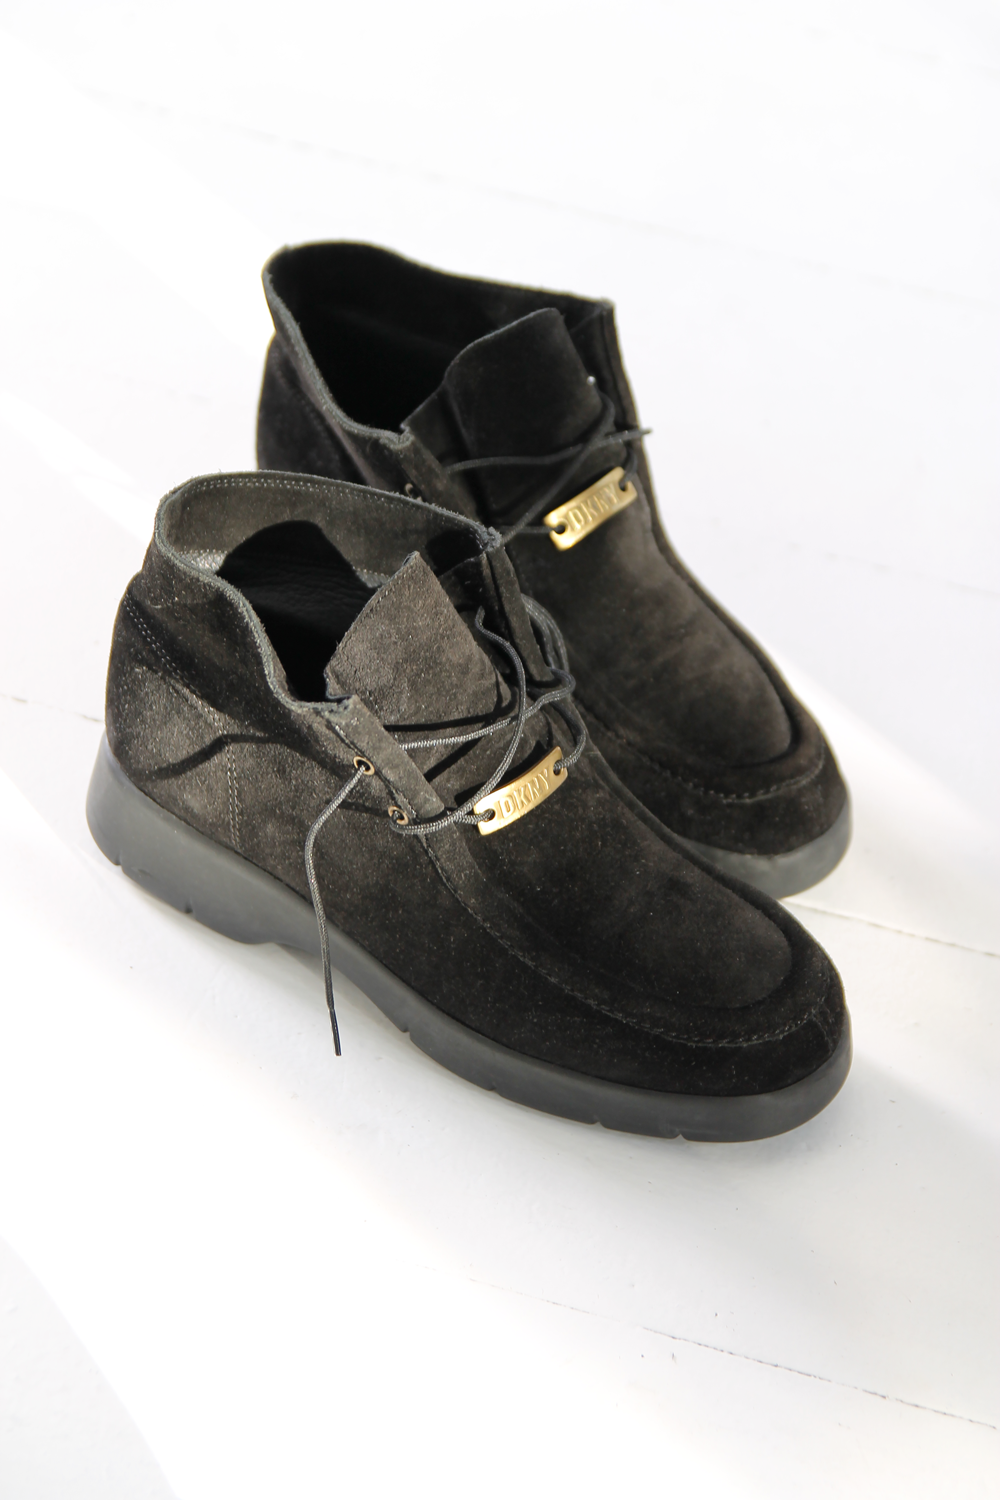 369c490f822 DUO NYC Vintage DKNY Ankle Boots